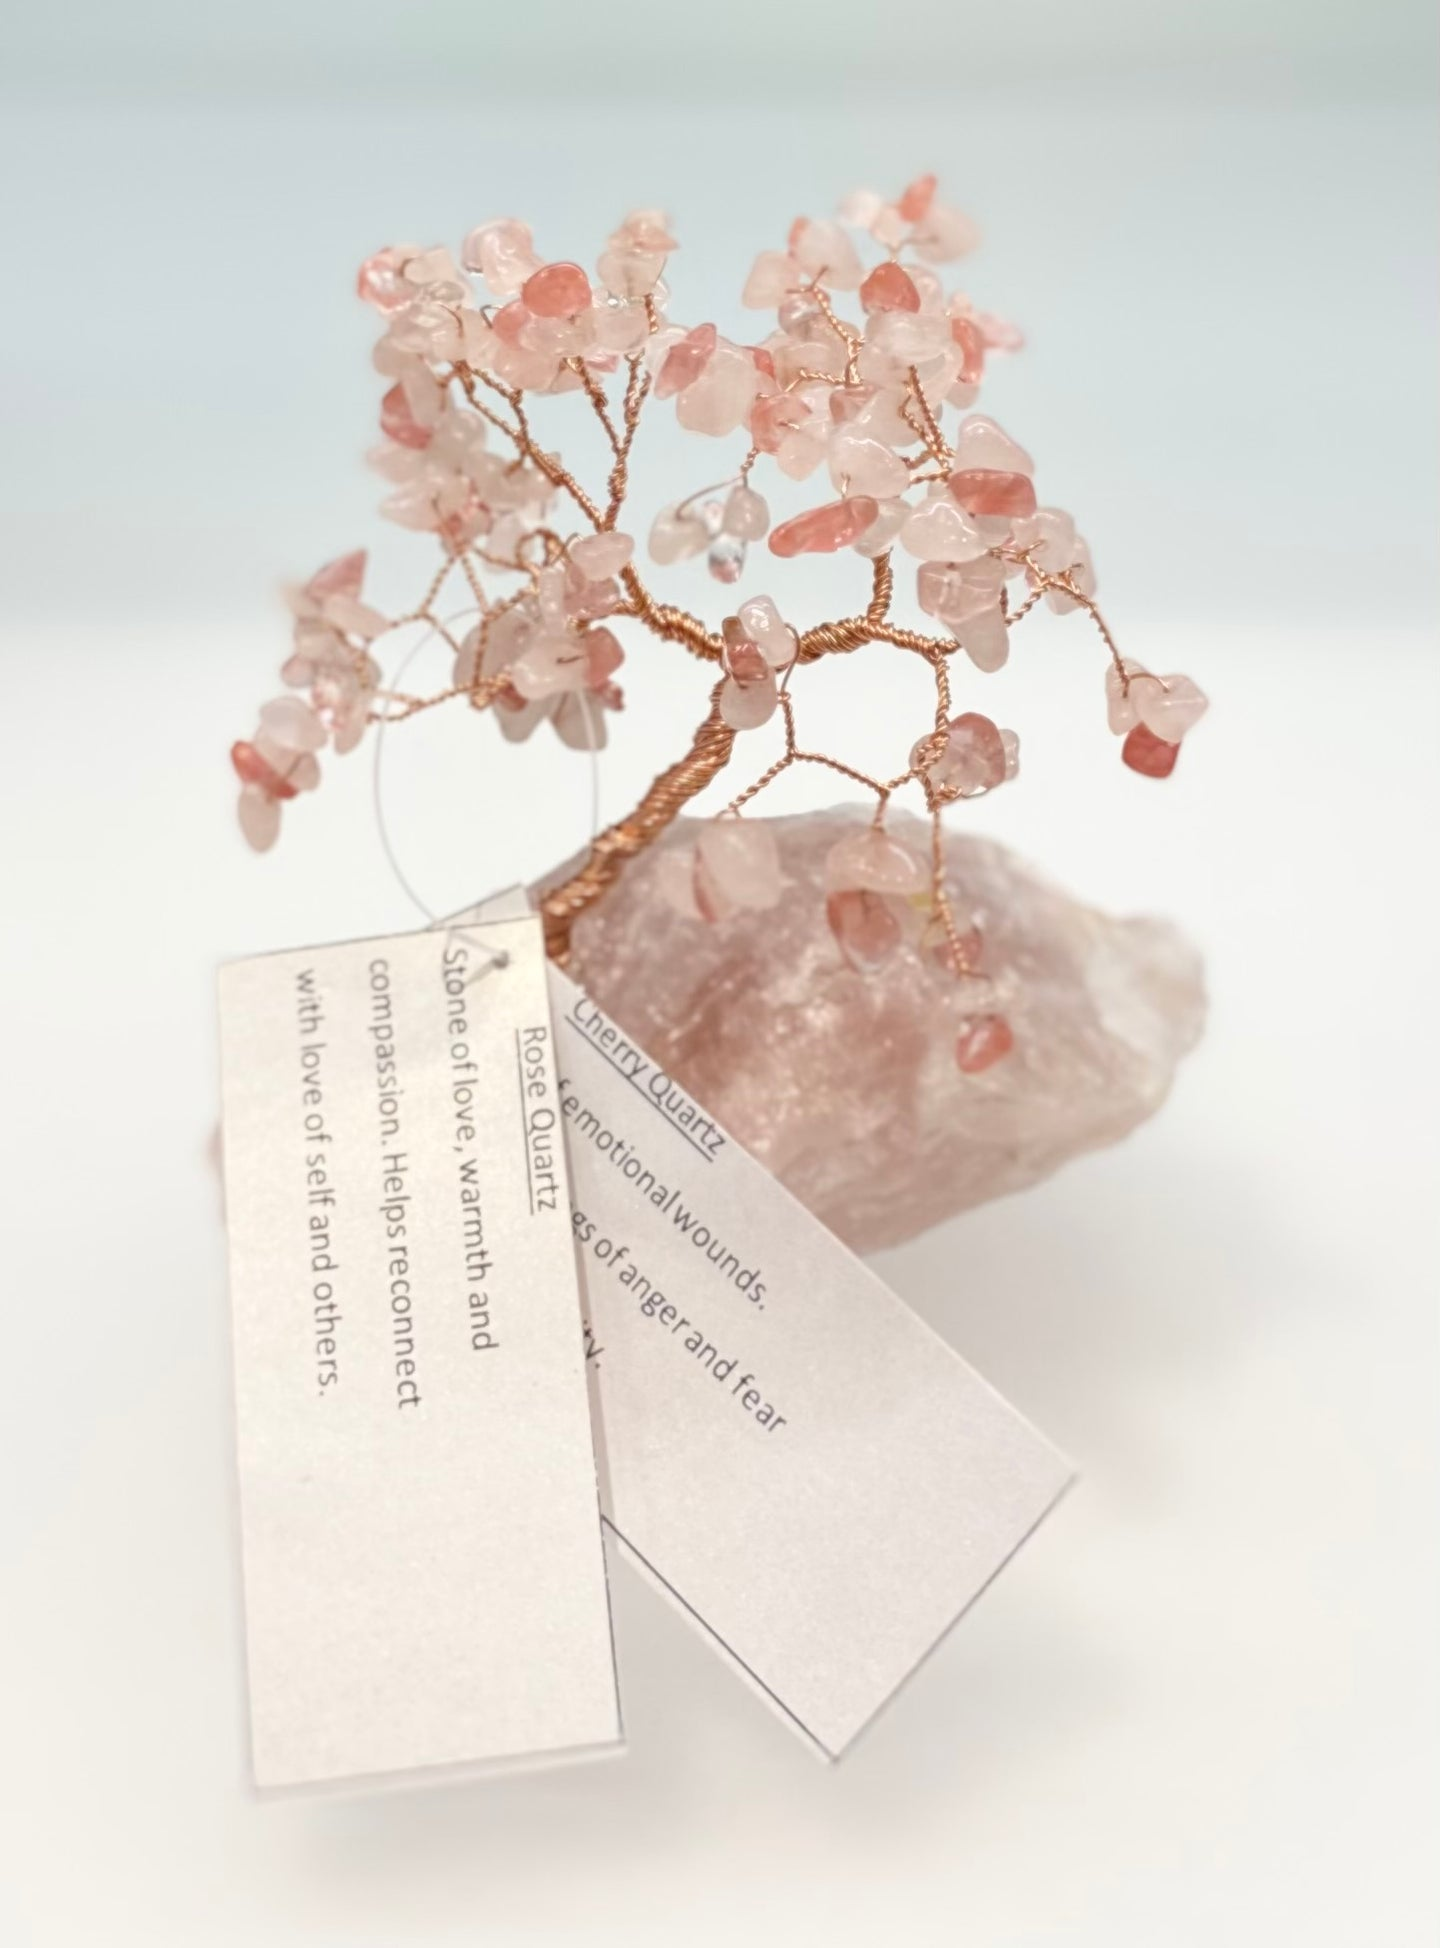 Healing Crystal Gemstone Tree - Rose & Cherry Quartz (large)